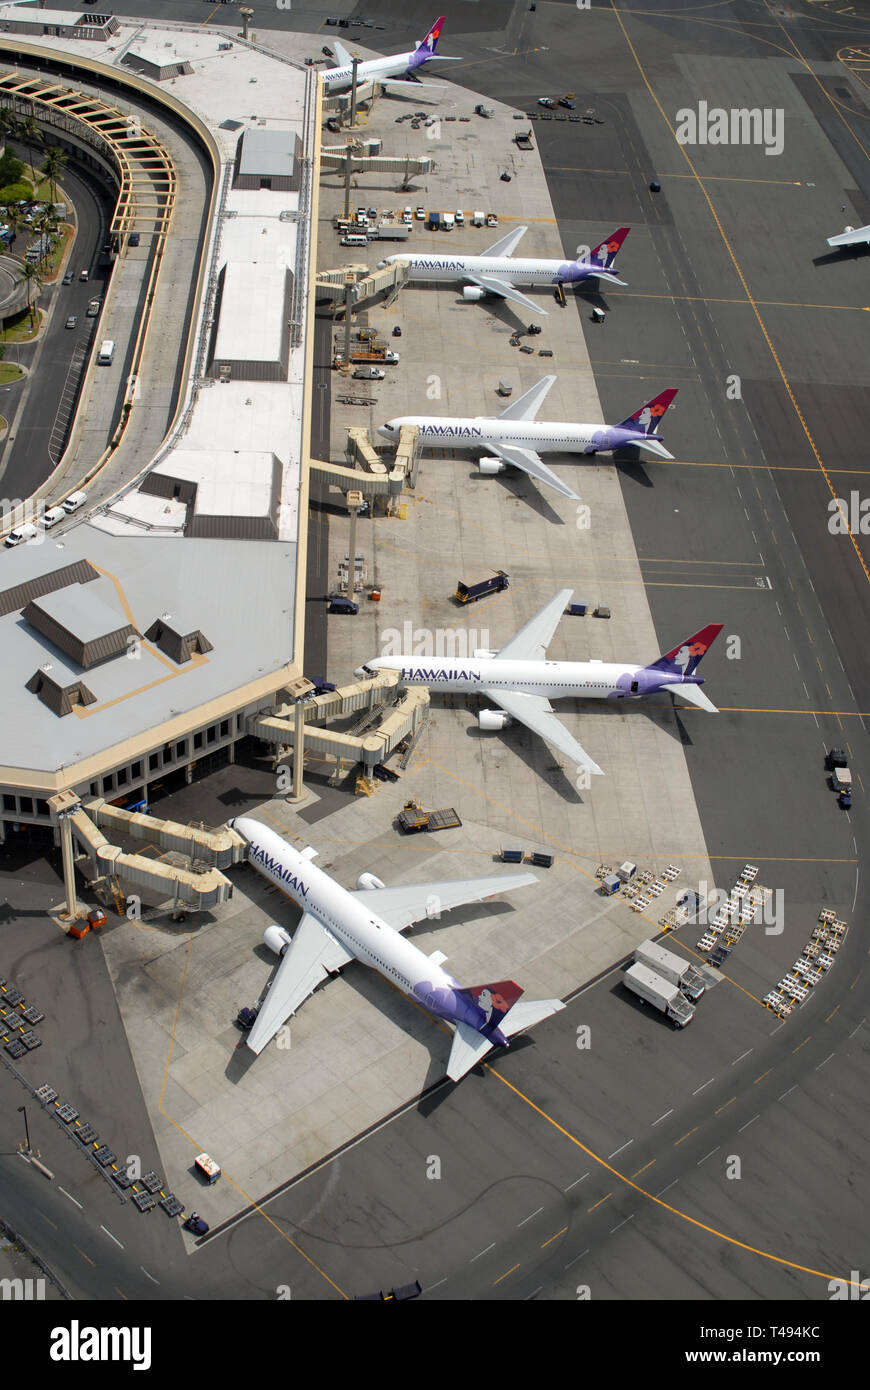 A portrait aerial view of jet airliners at the gates at a major airport in Hawaii. - Stock Image